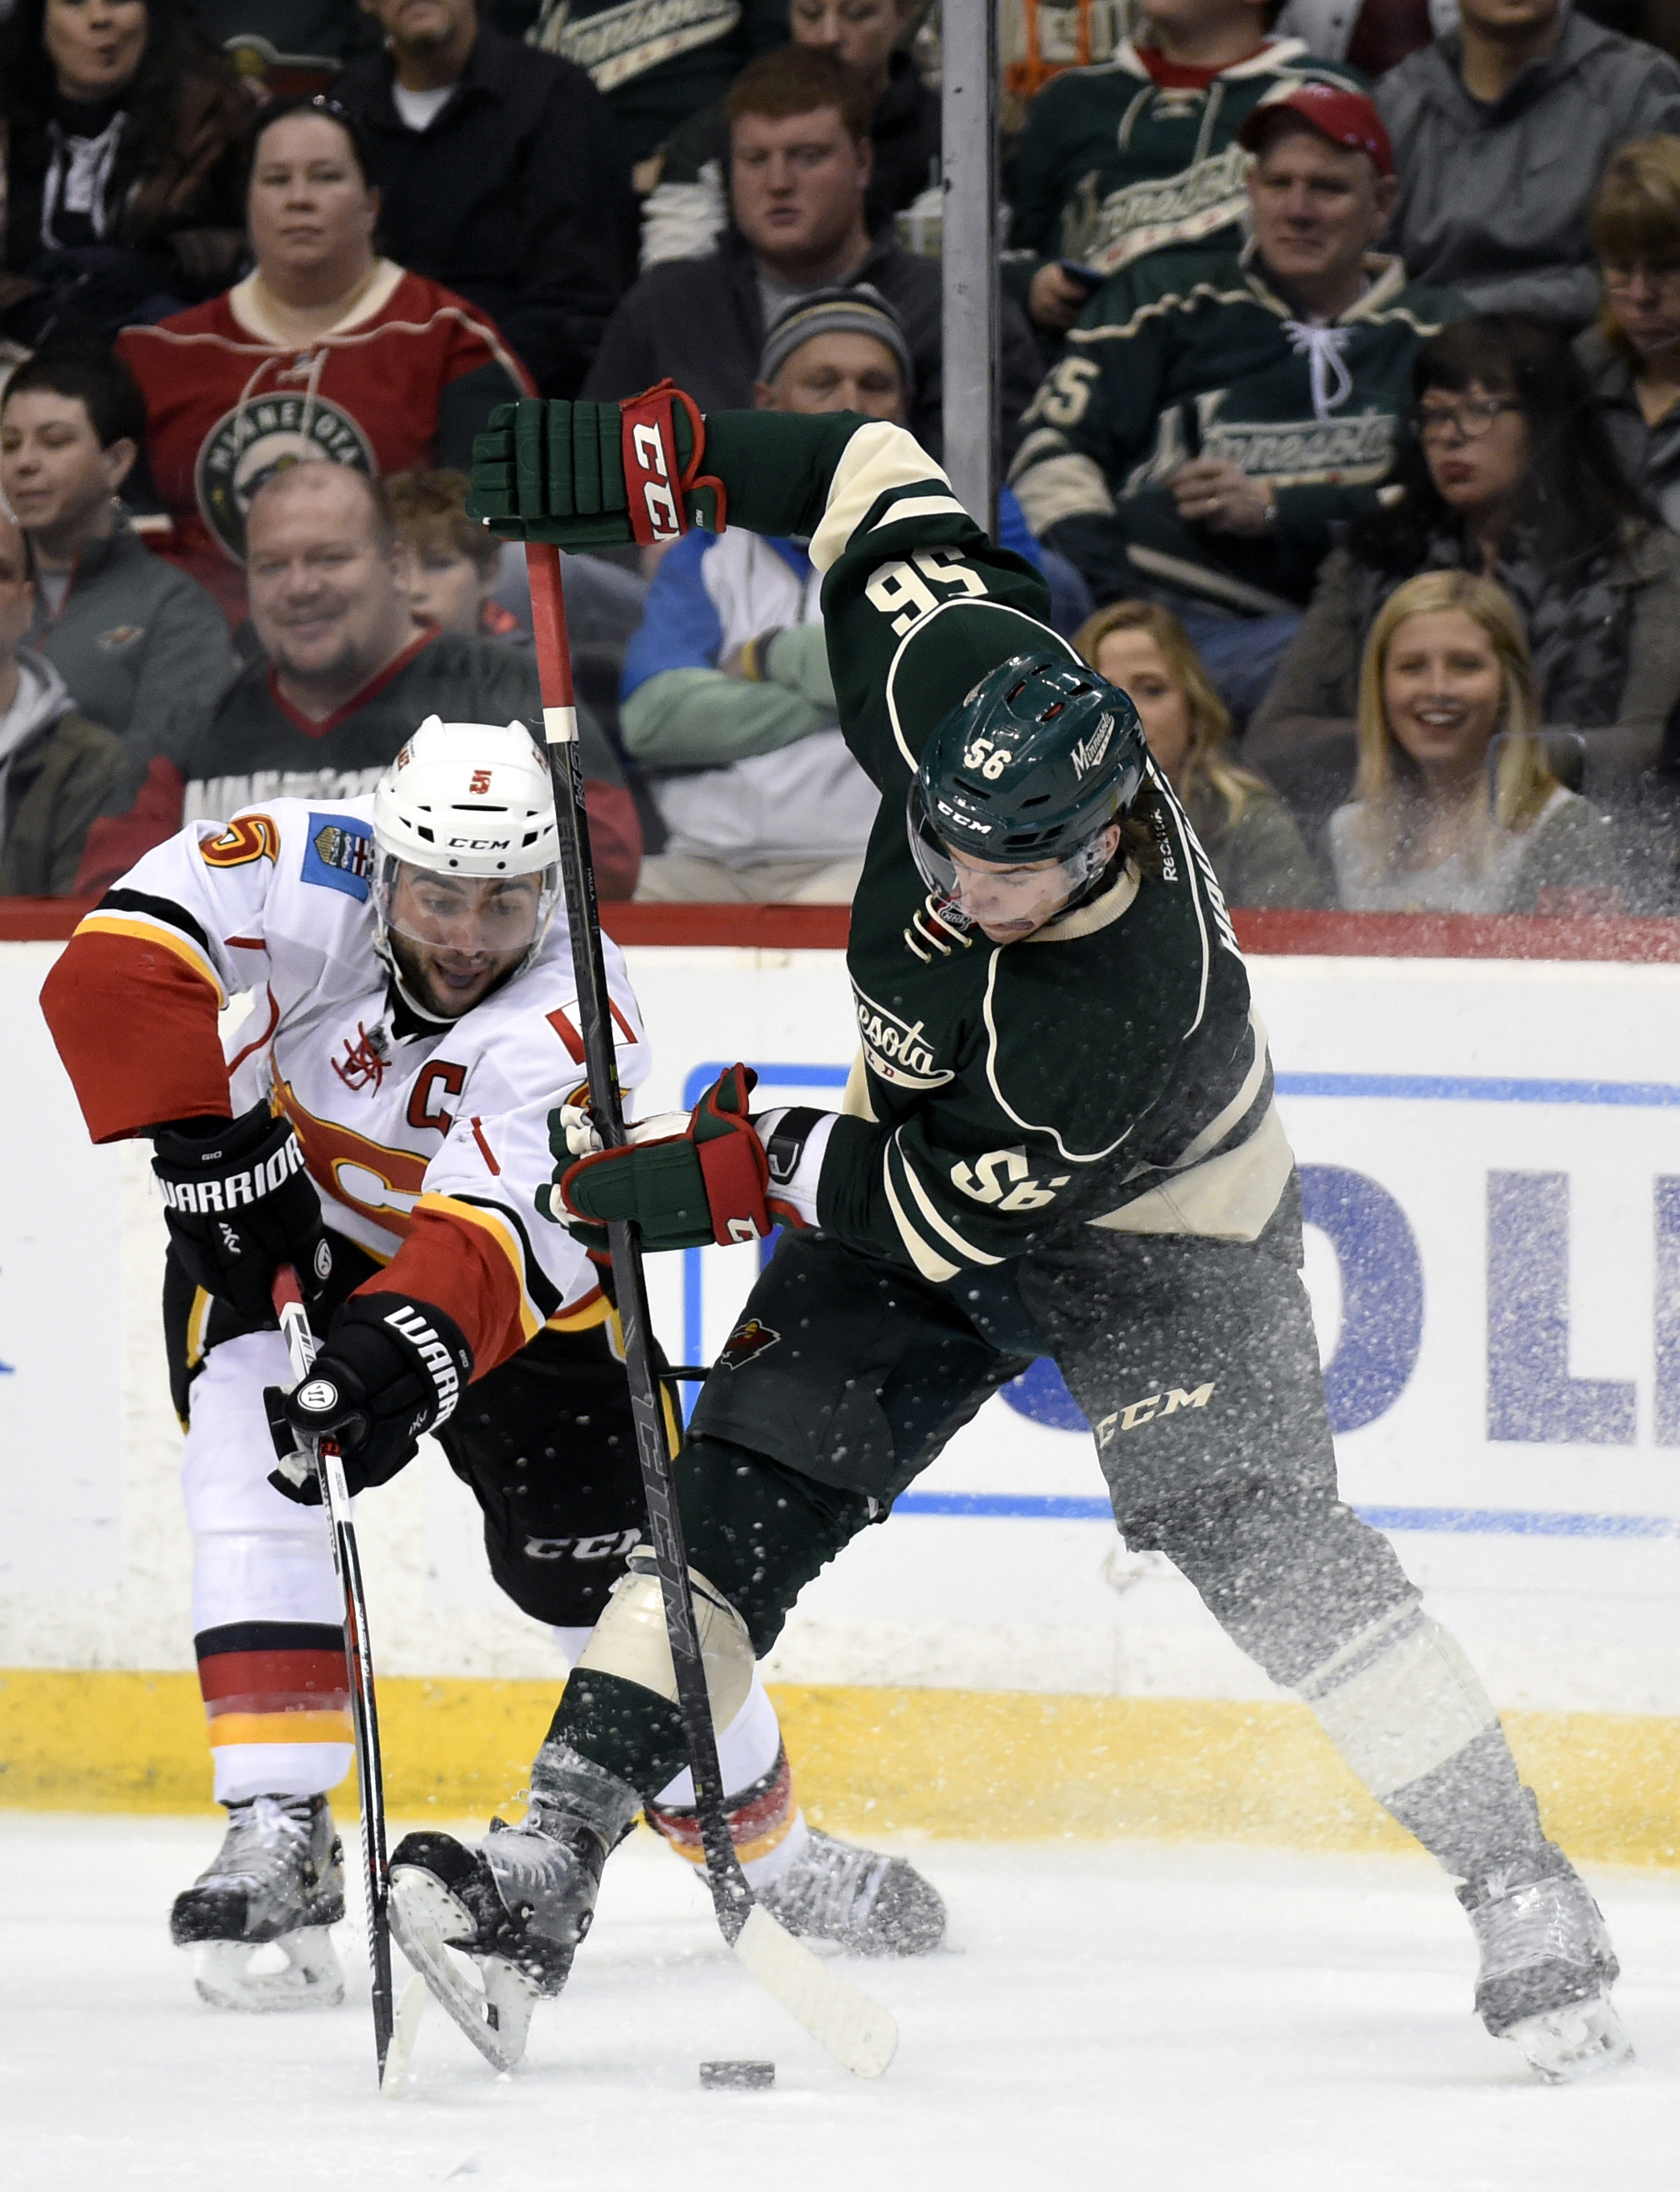 Calgary Flames' Mark Giordano, left, passes the puck away from Minnesota Wild's Erik Haula, of Finland, during the second period of an NHL hockey game Saturday, April 9, 2016, in St. Paul, Minn. (AP Photo/Hannah Foslien)